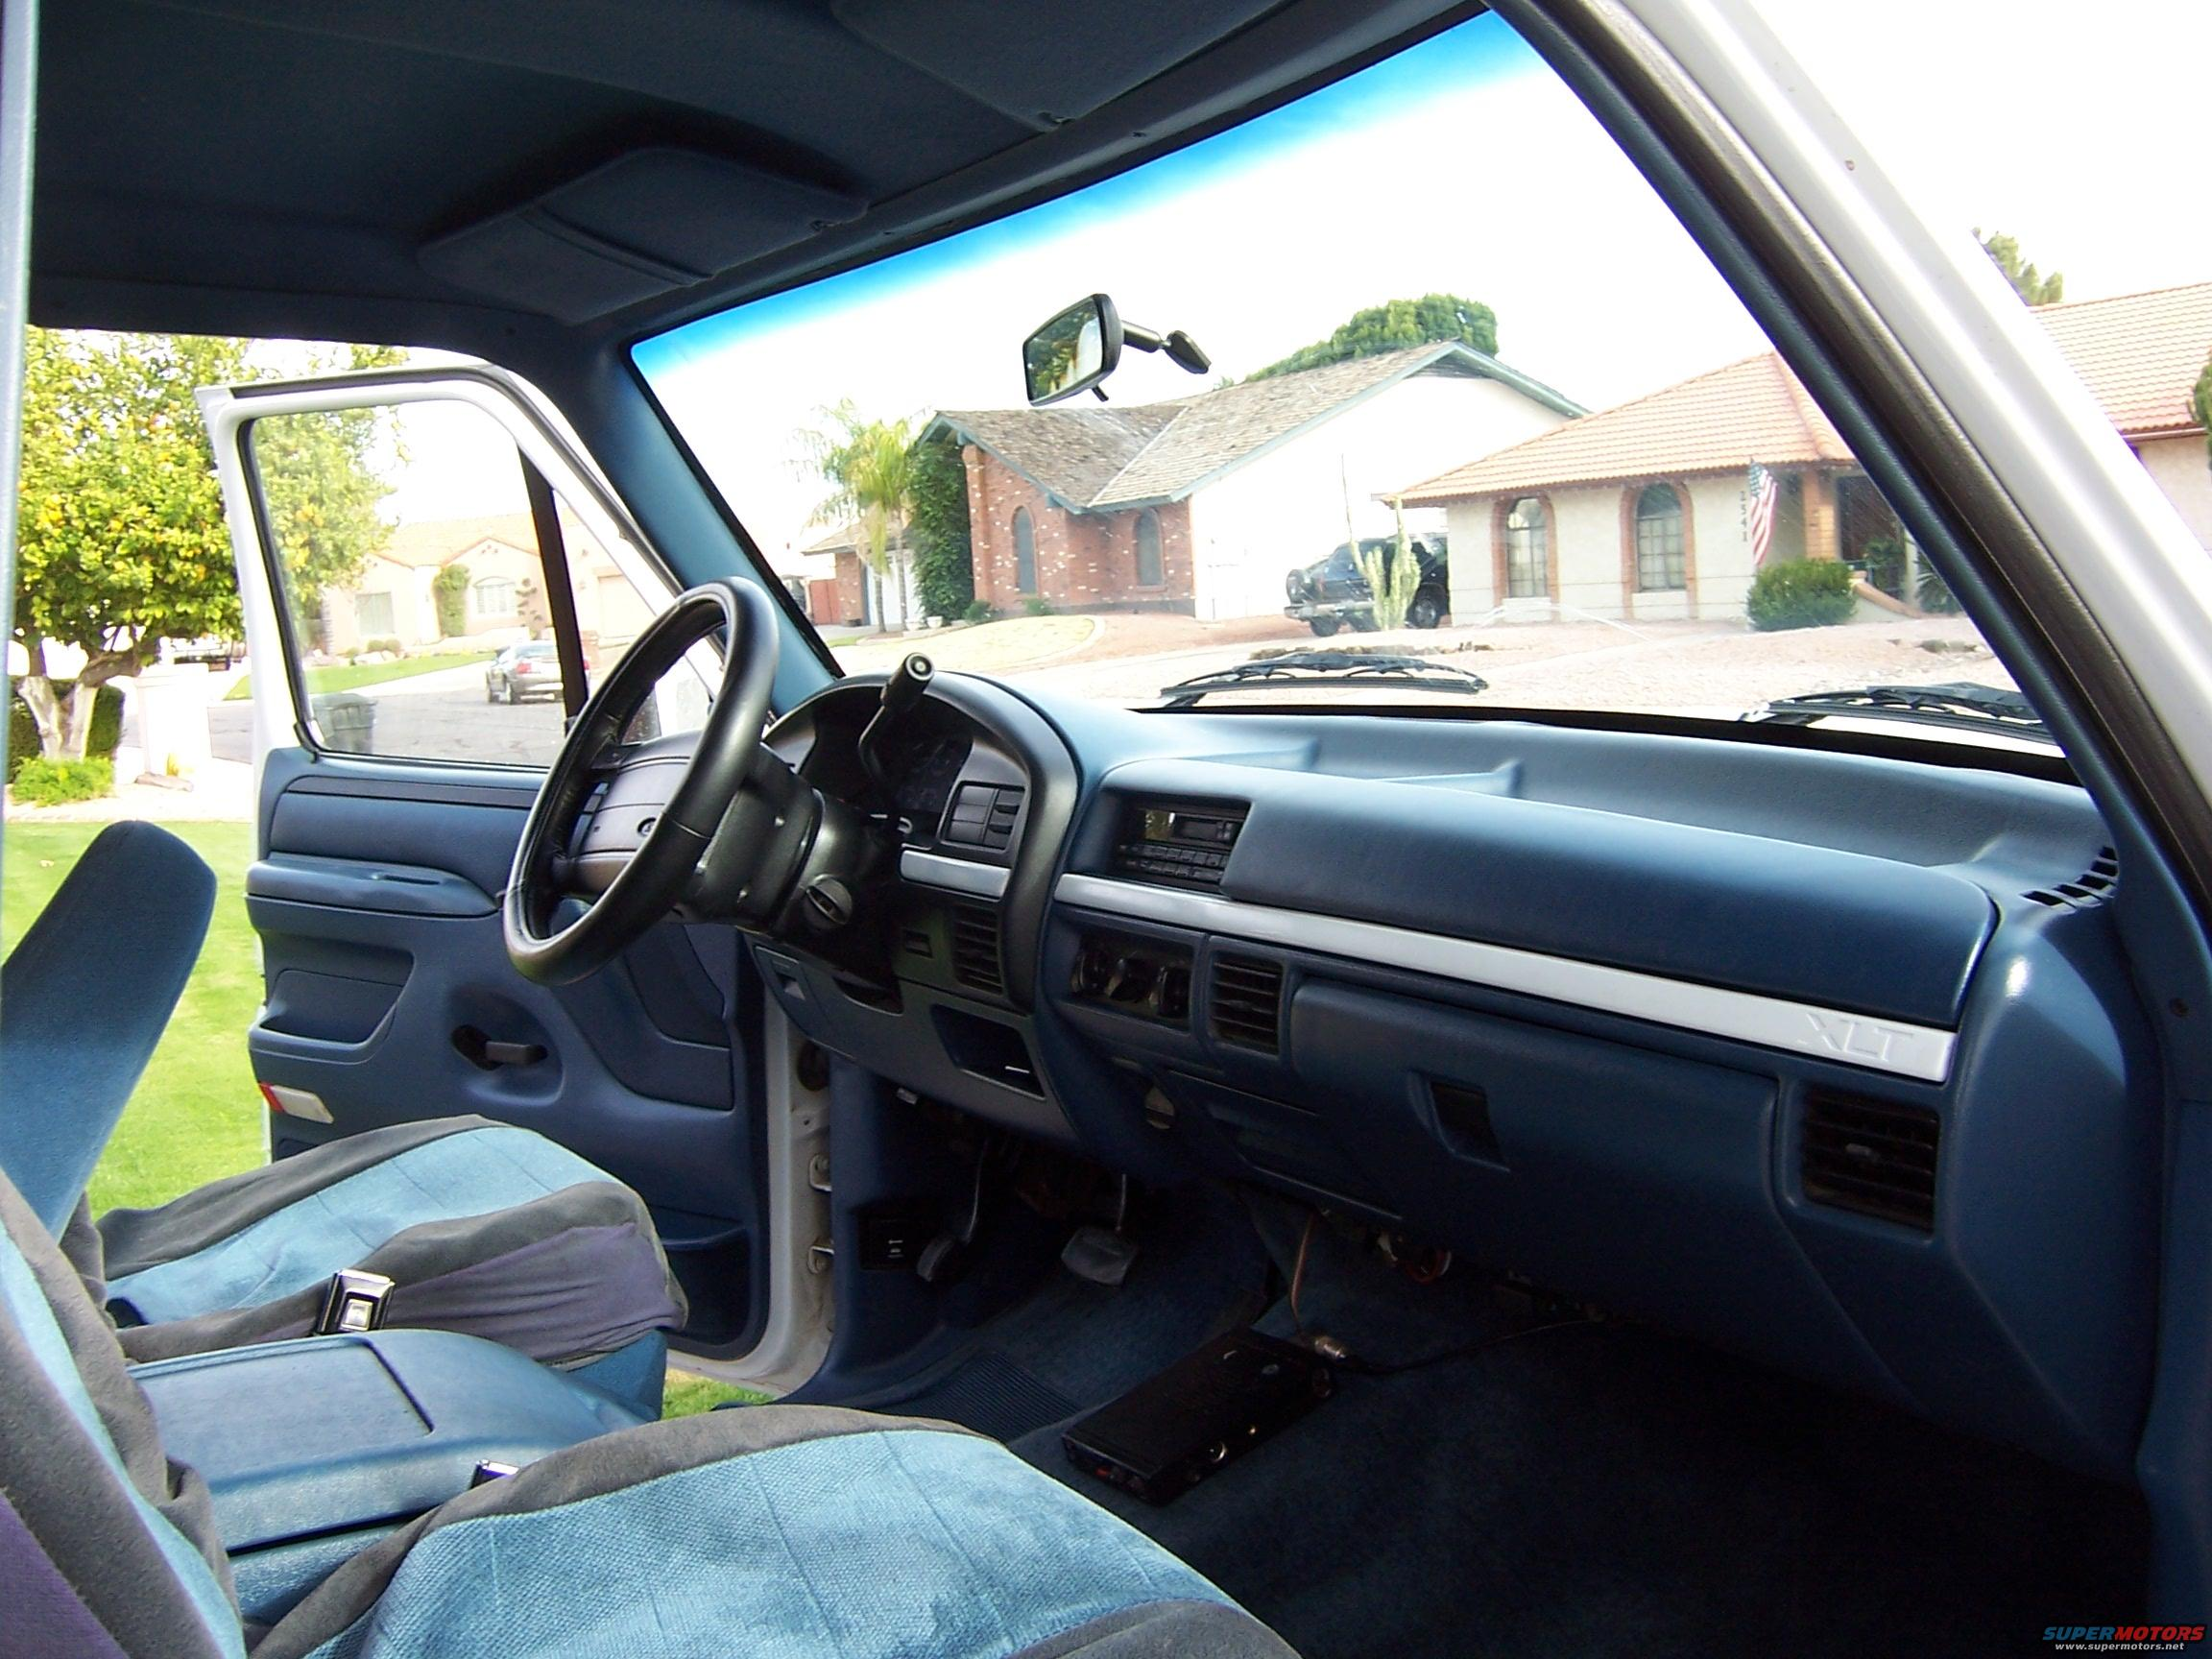 Charming 1996 Bronco Interior Gallery - The Best Electrical Circuit ...